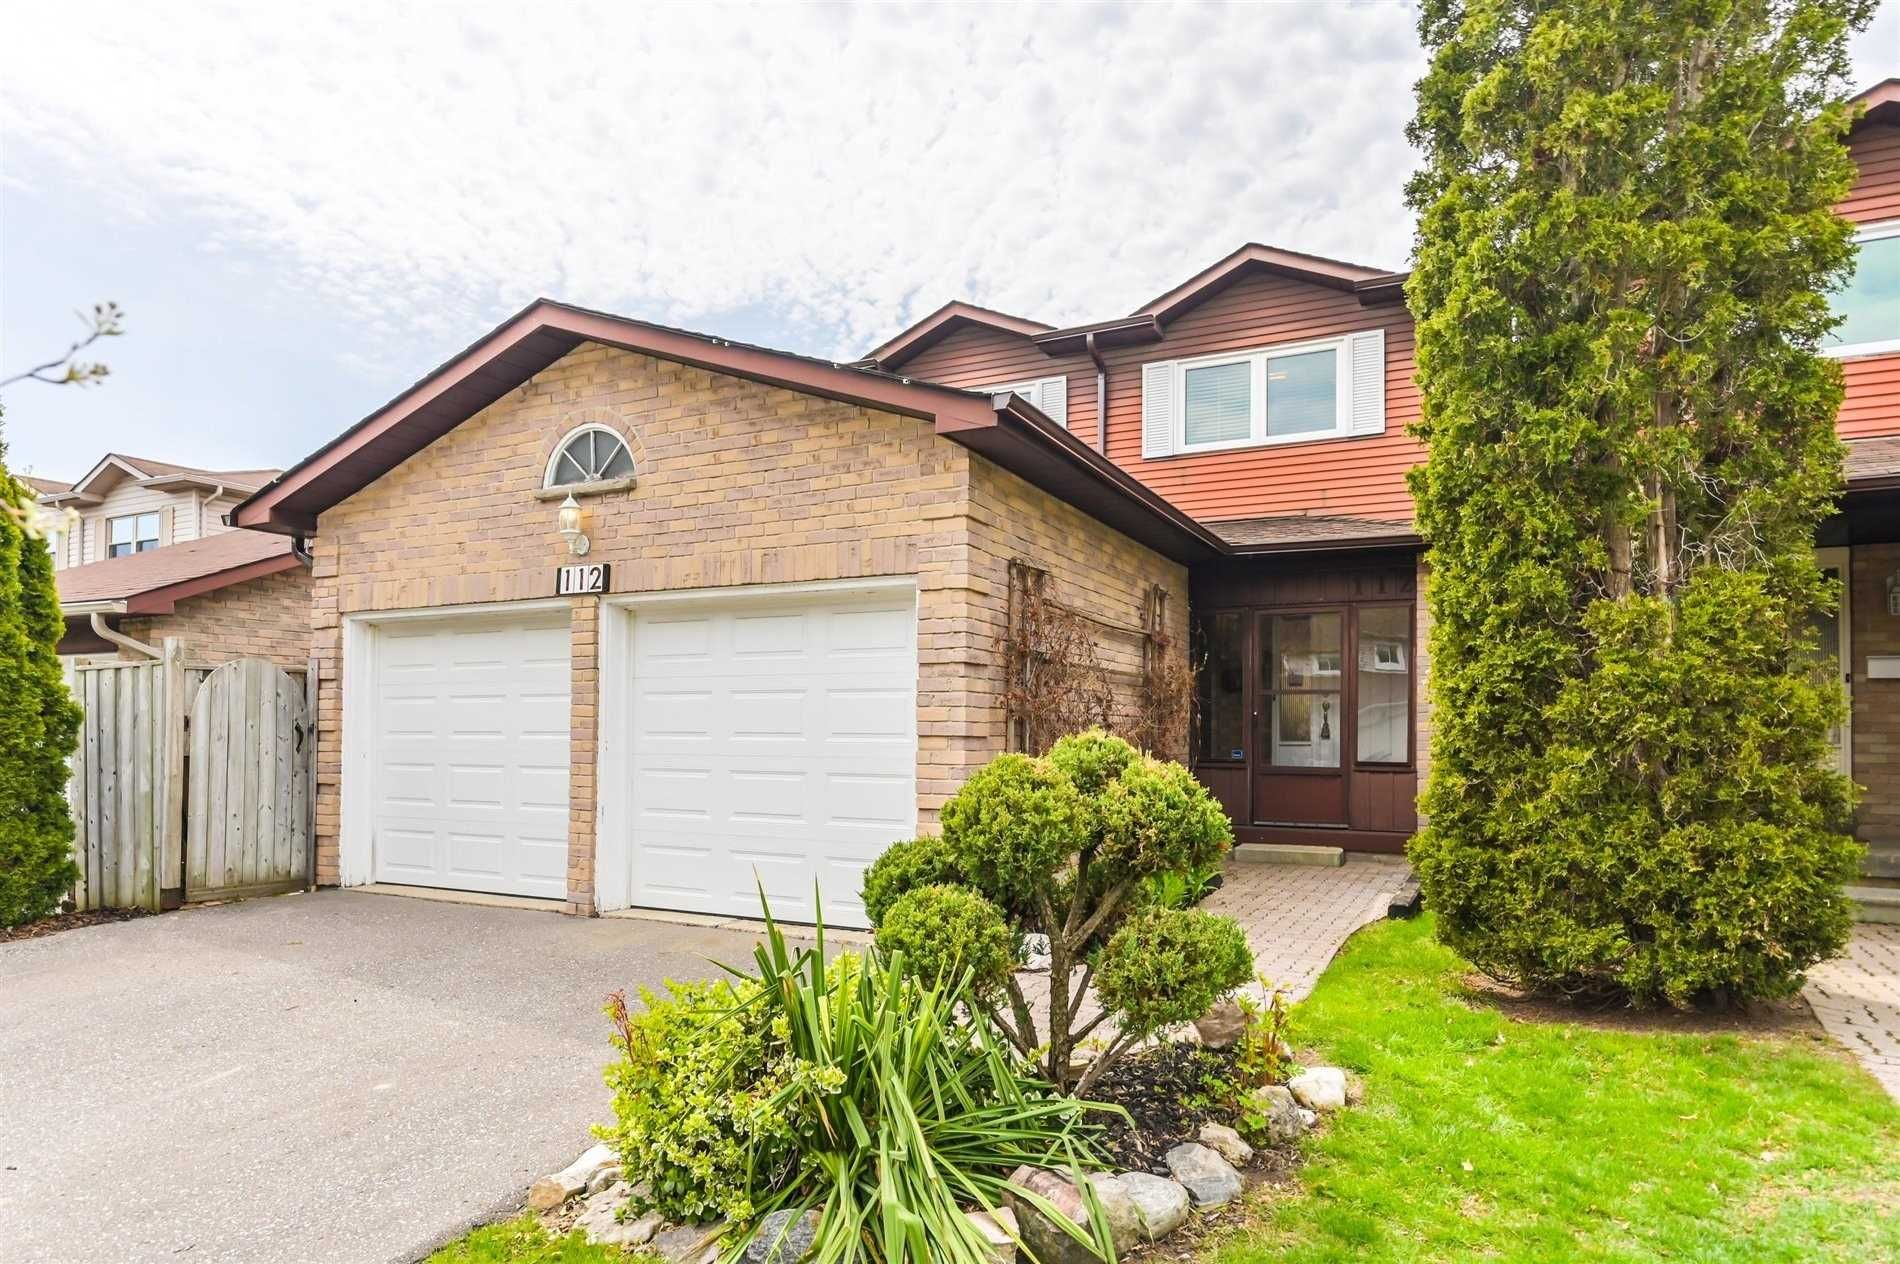 Main Photo: 112 Ribblesdale Drive in Whitby: Pringle Creek House (2-Storey) for sale : MLS®# E5222061